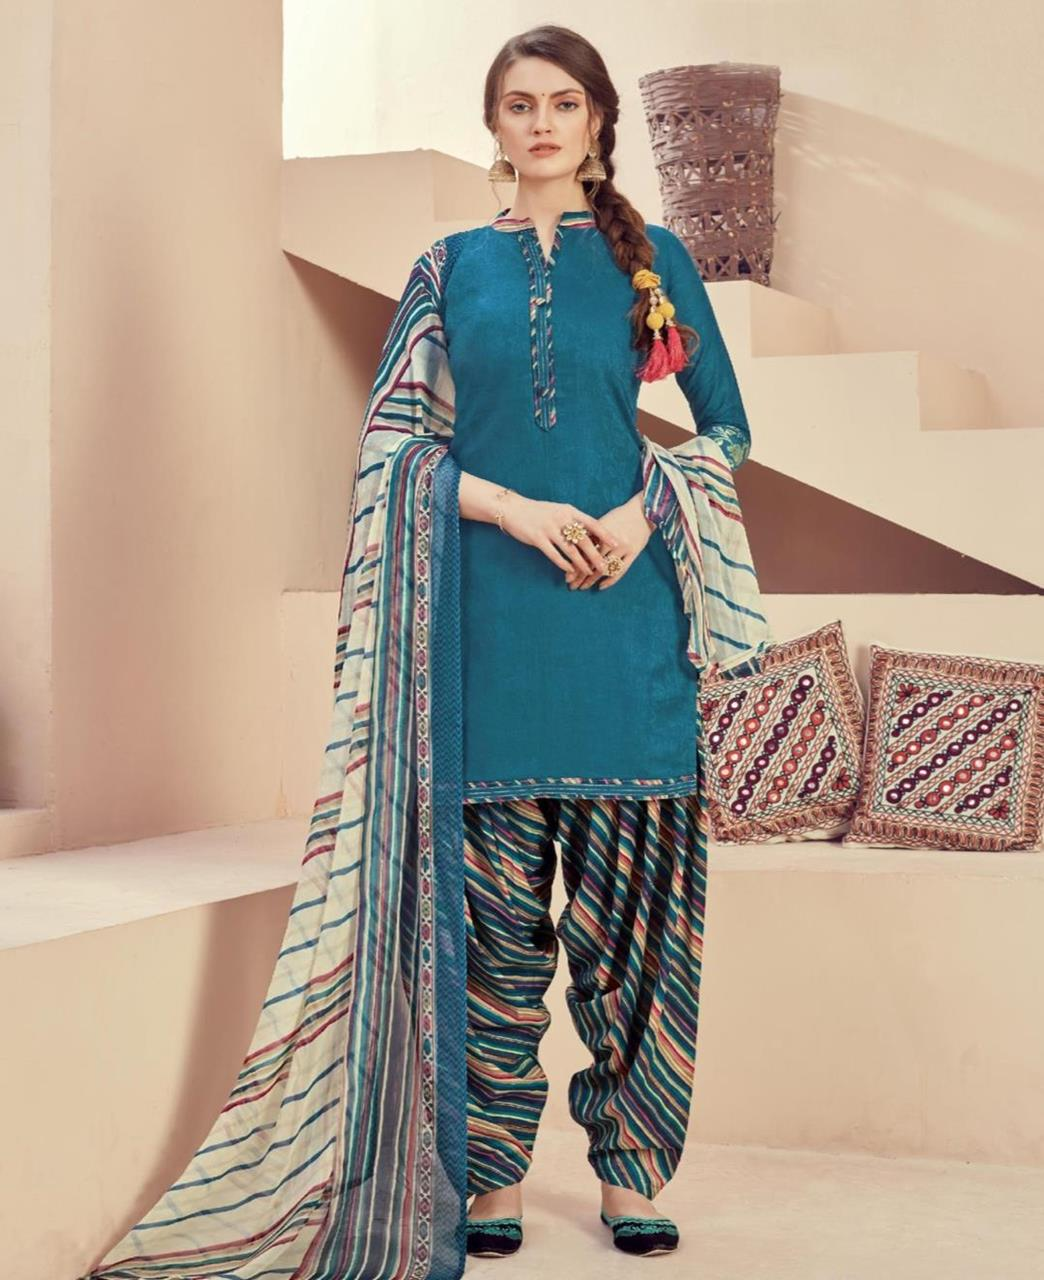 Printed Cotton Patiyala Suit Salwar in Teal Blue